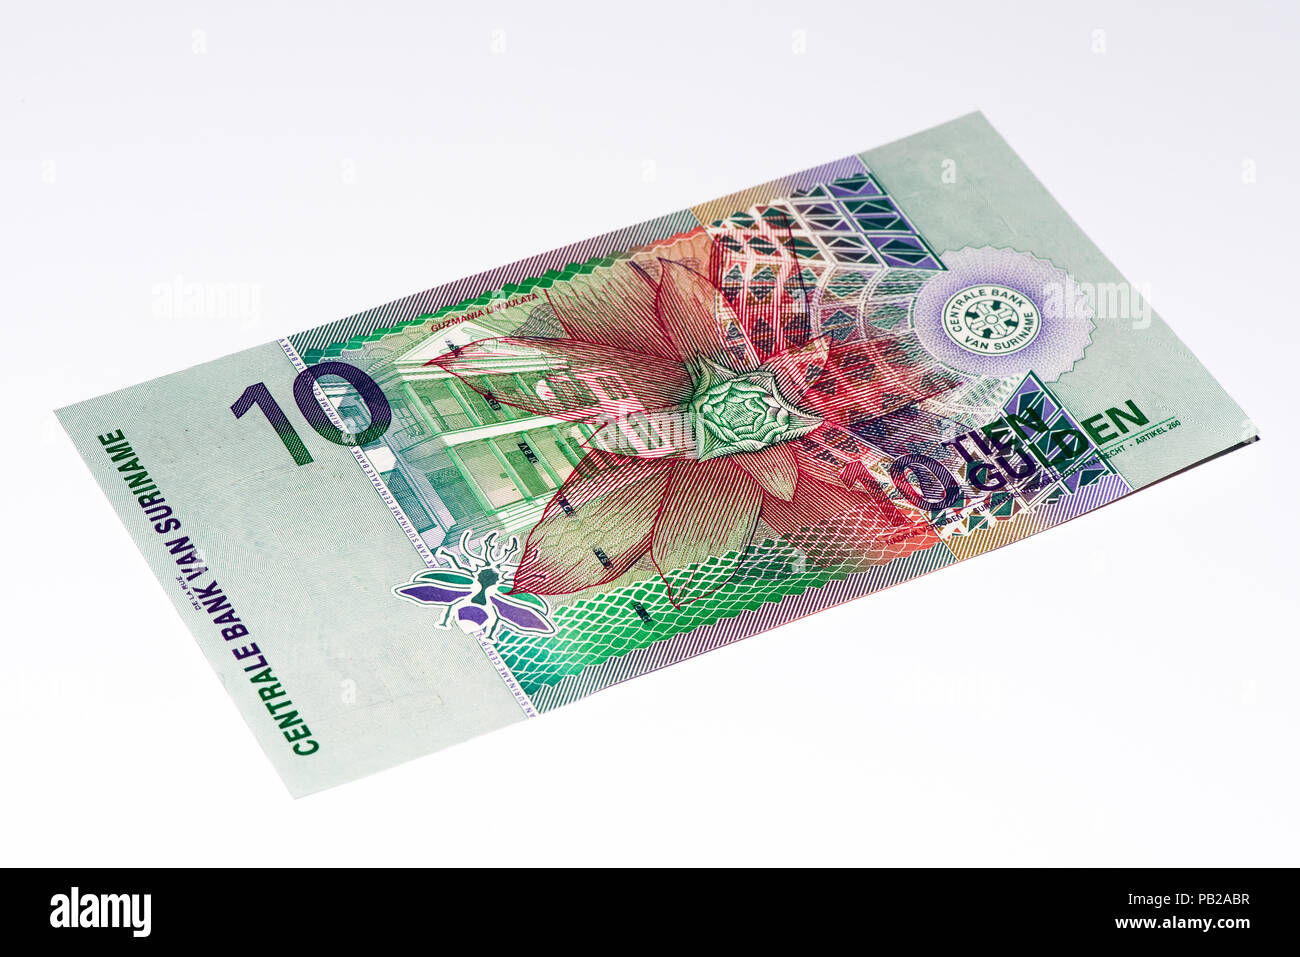 10 Surinamese gulden bank note. Gulden is the former currency of Suriname - Stock Image